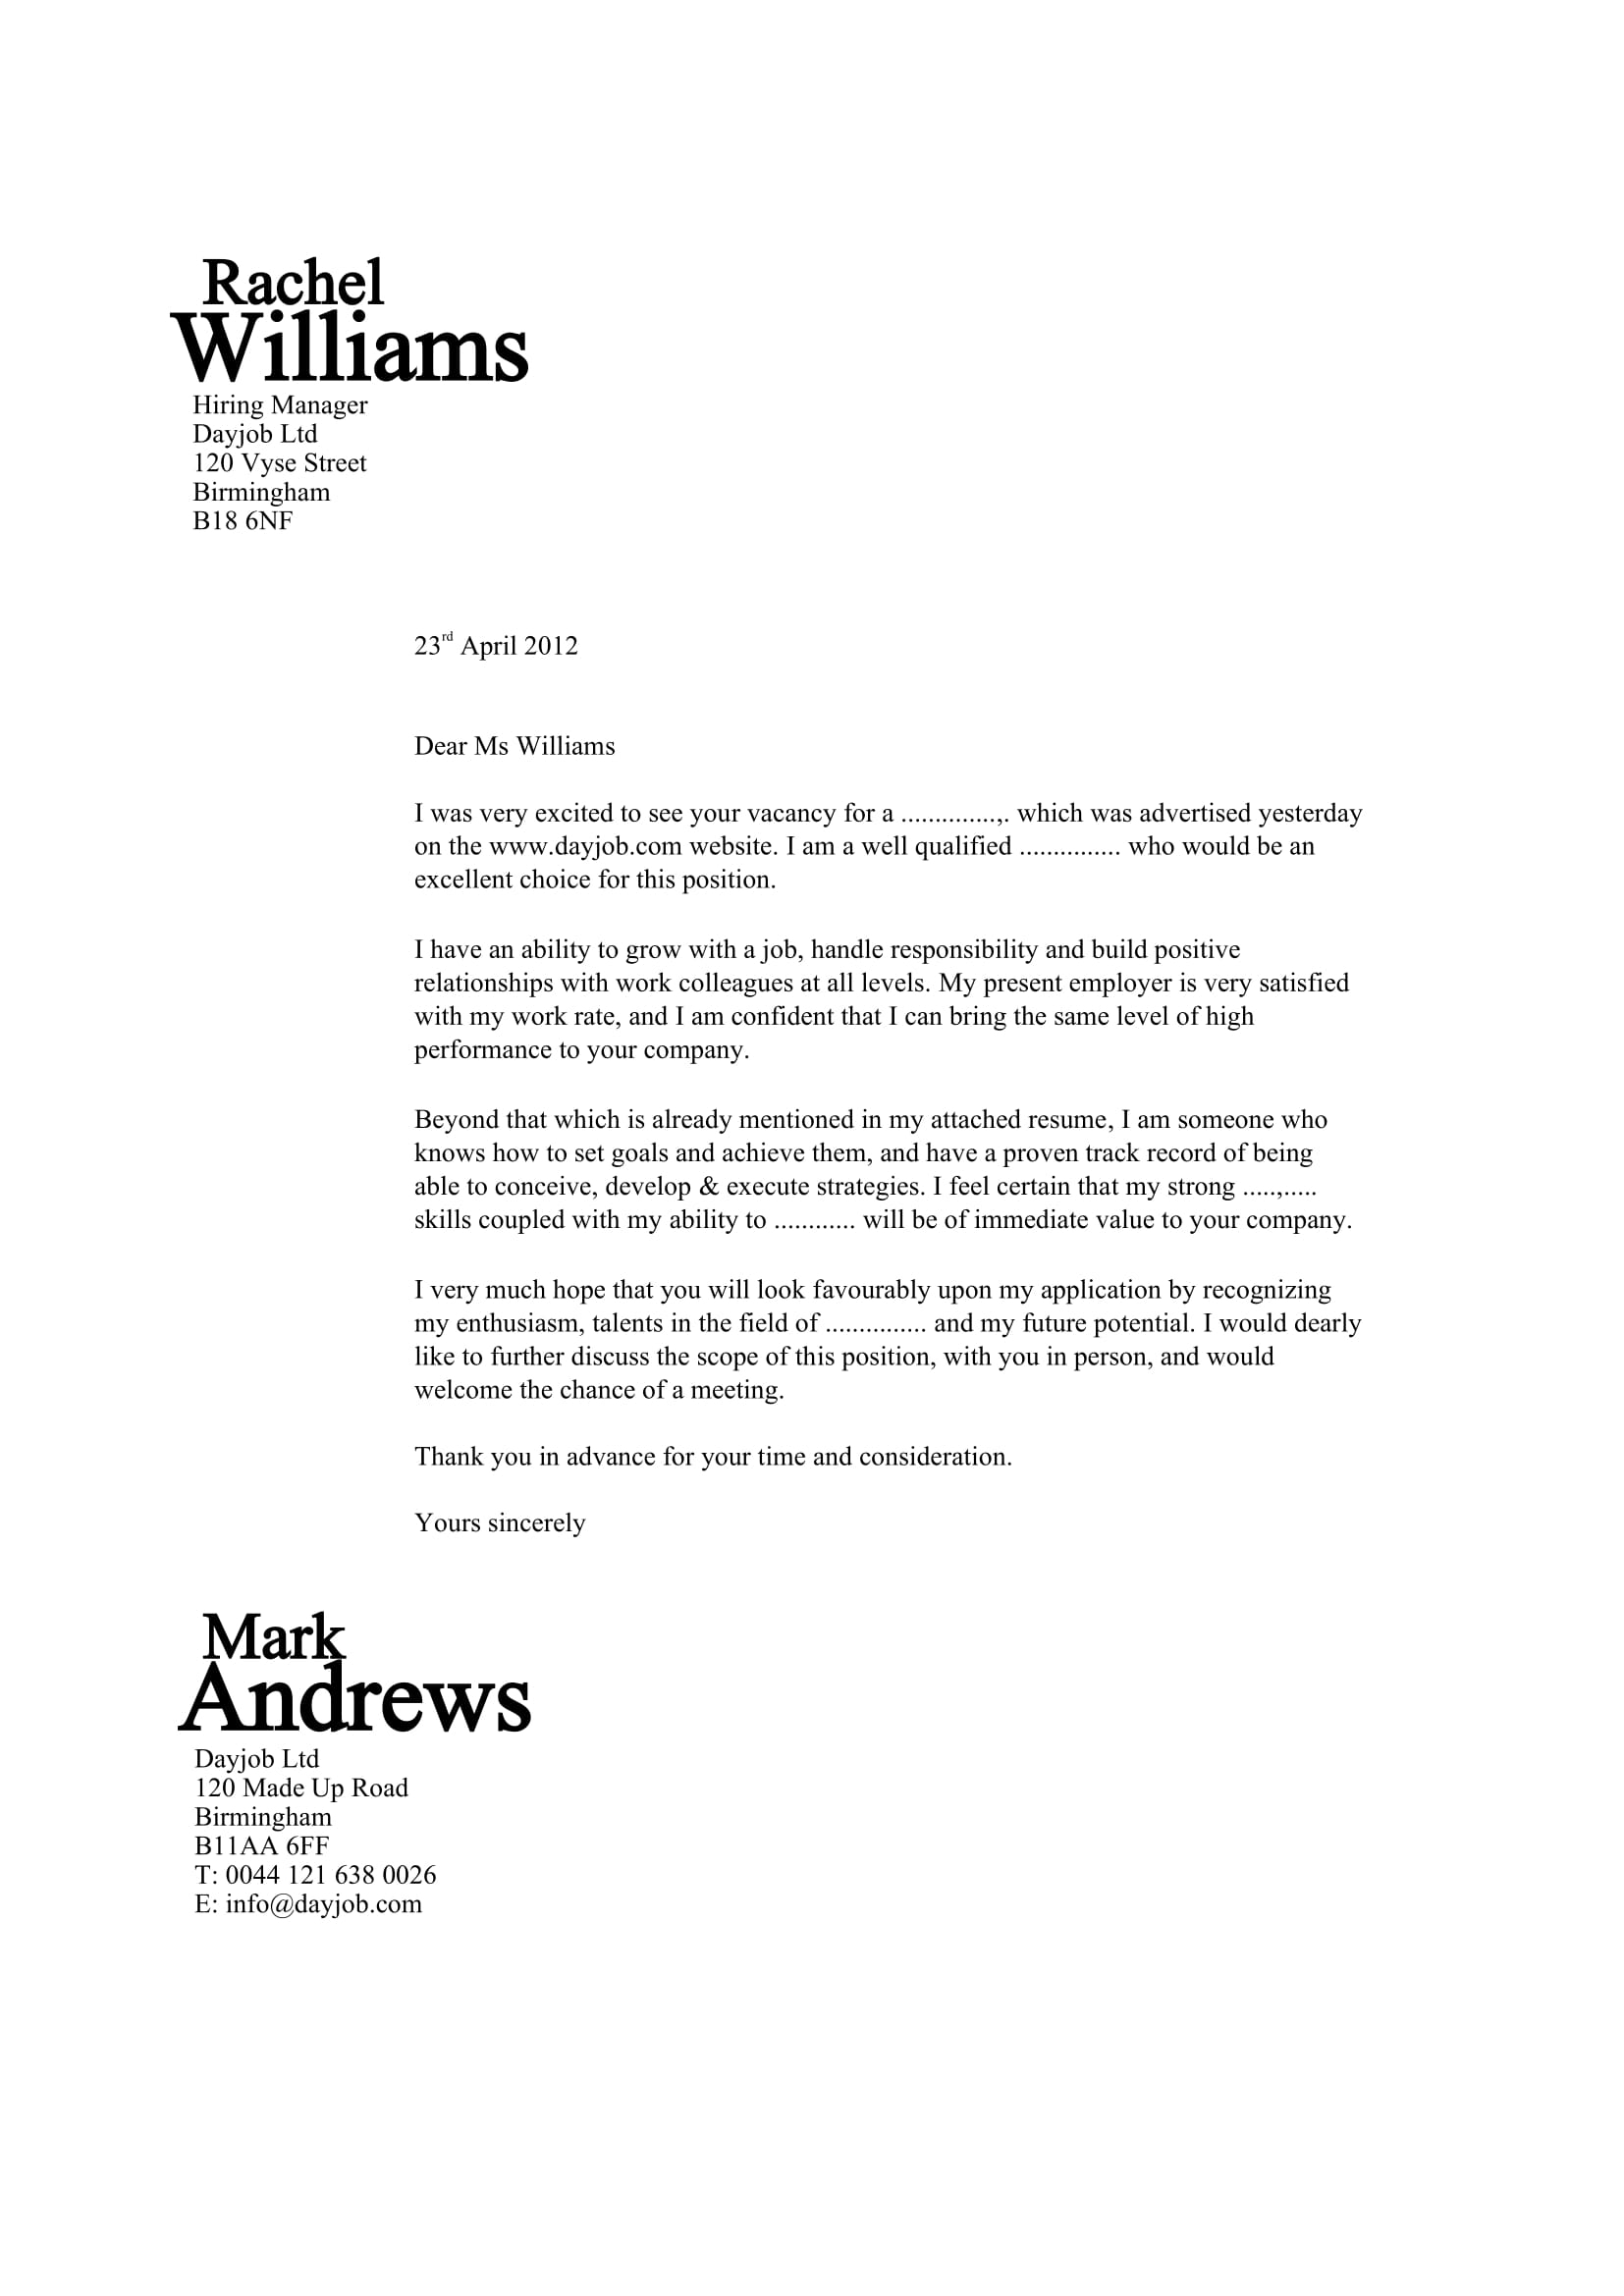 Samples Of Cover Letter  Good Cover Letter Samples Cablomongroundsapexco